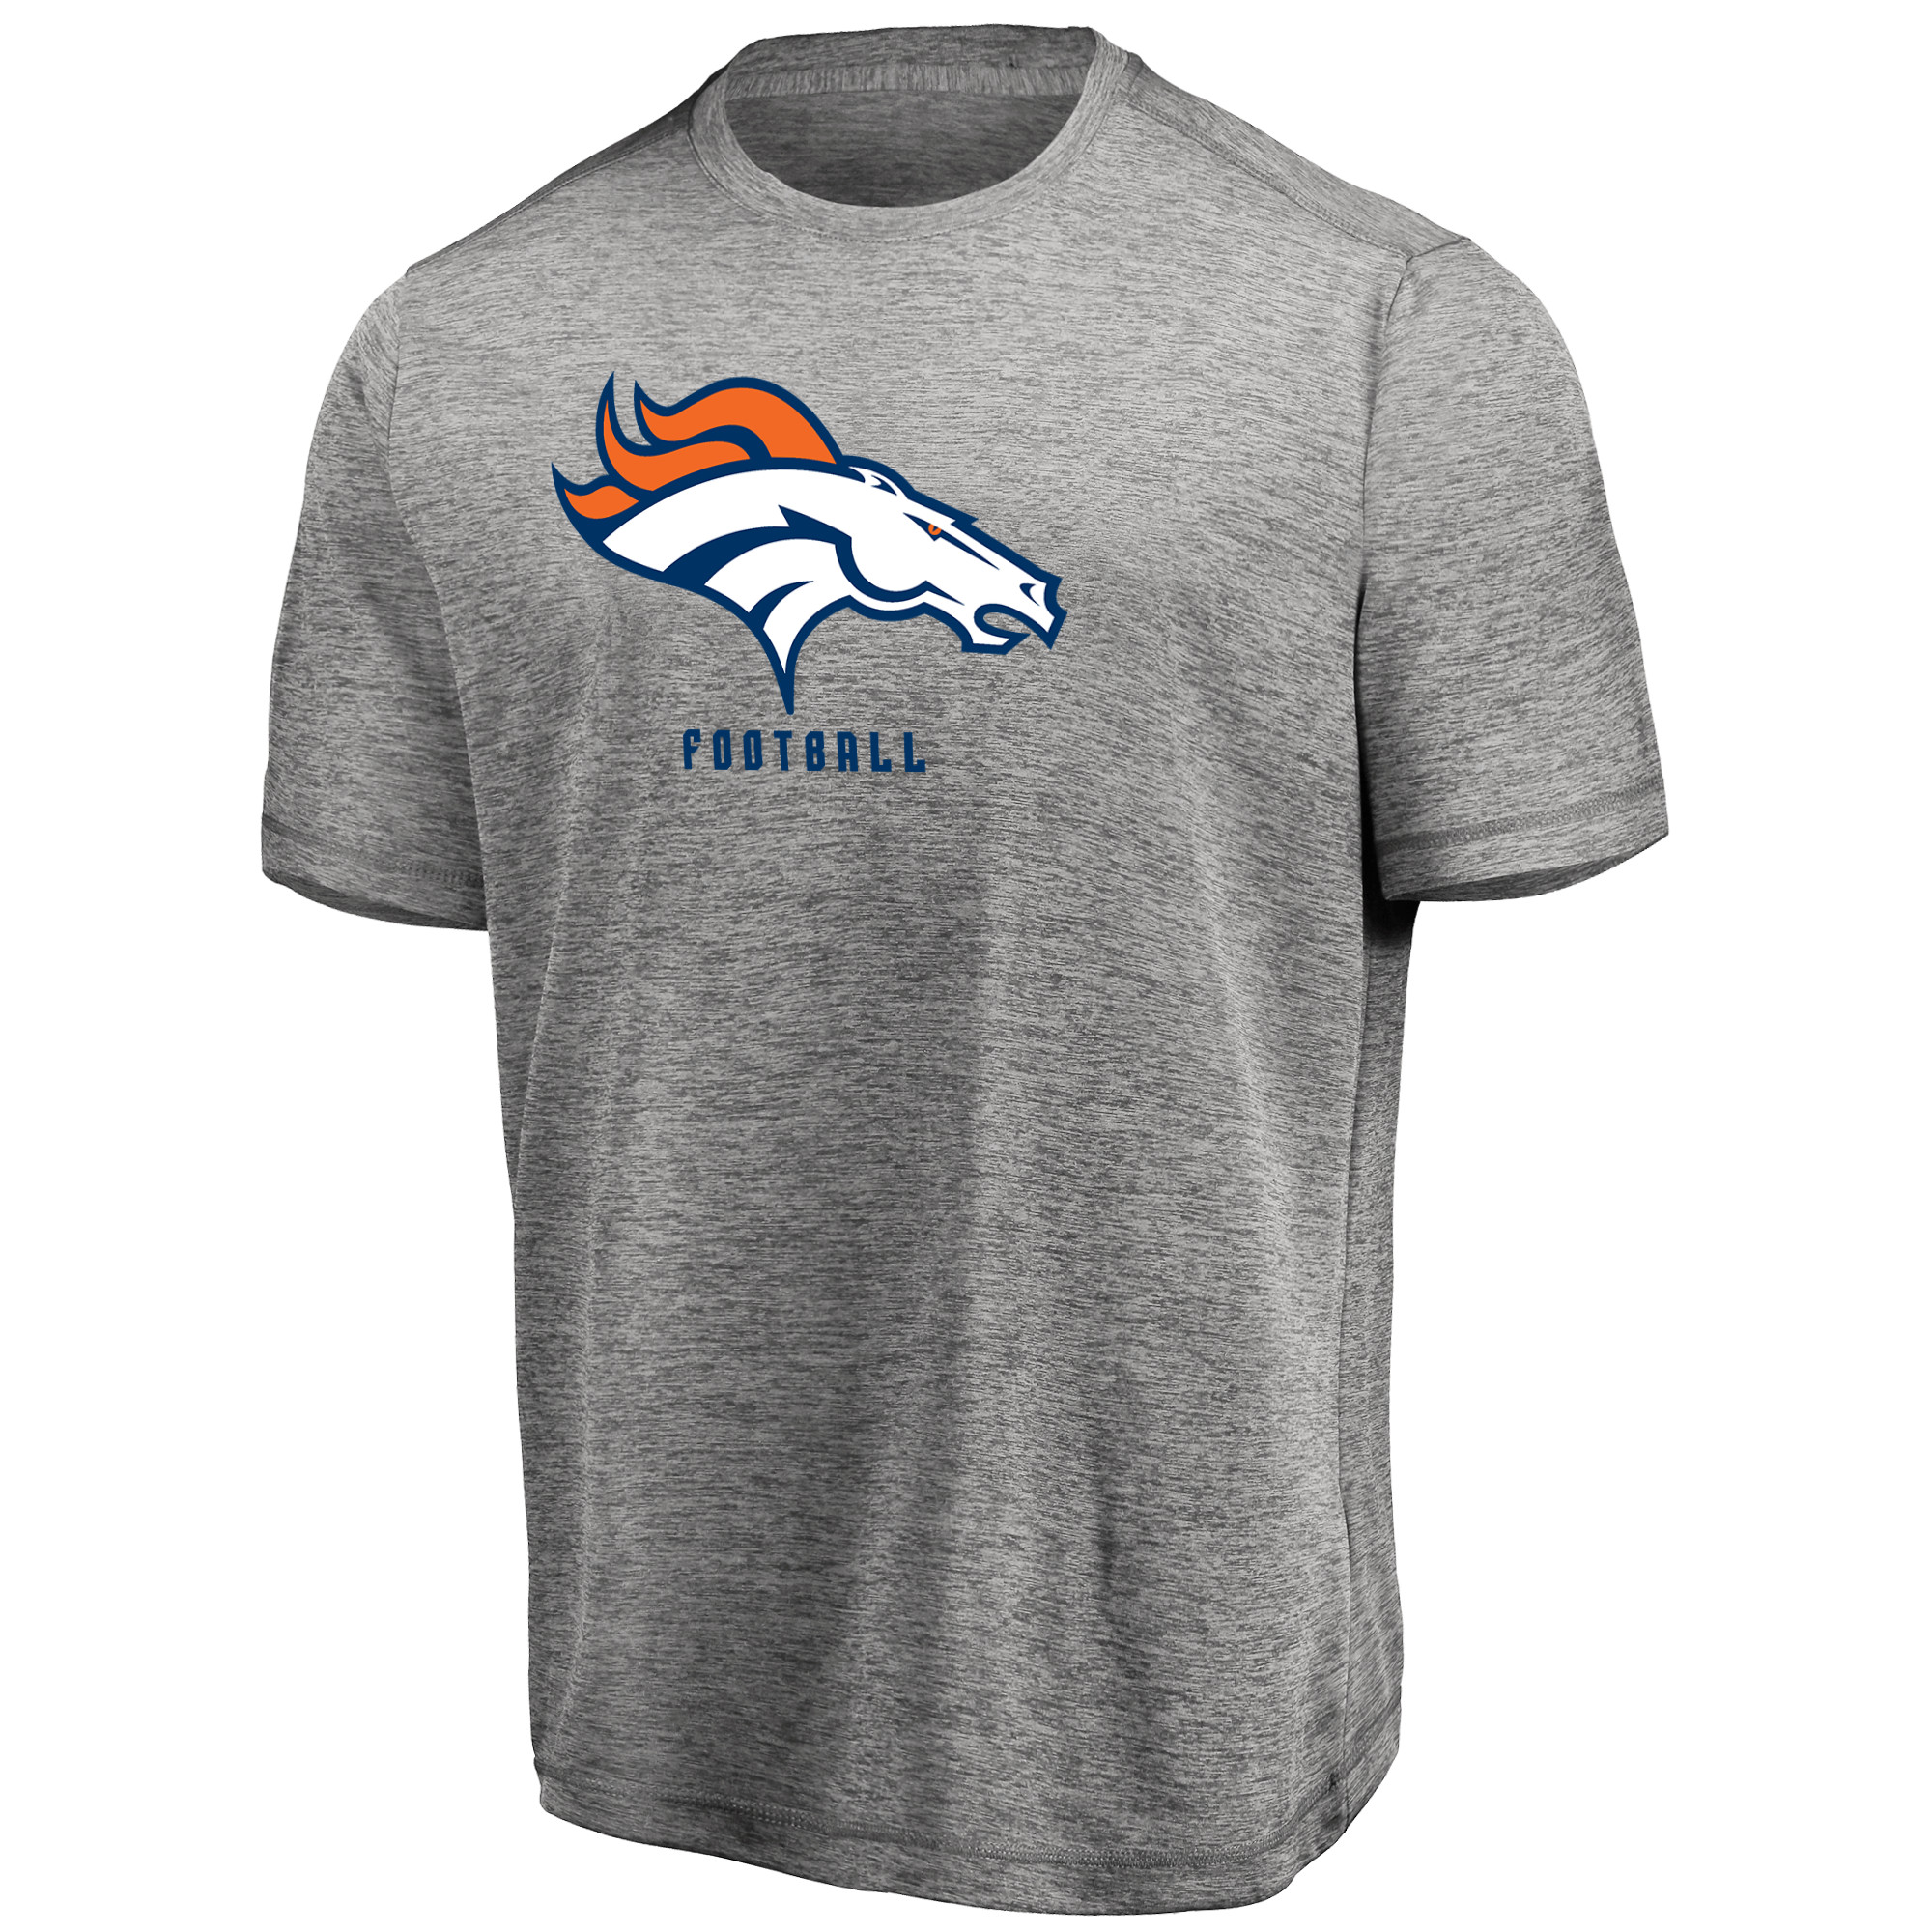 Men's Majestic Heathered Gray Denver Broncos Proven Winner Synthetic TX3 Cool Fabric T-Shirt